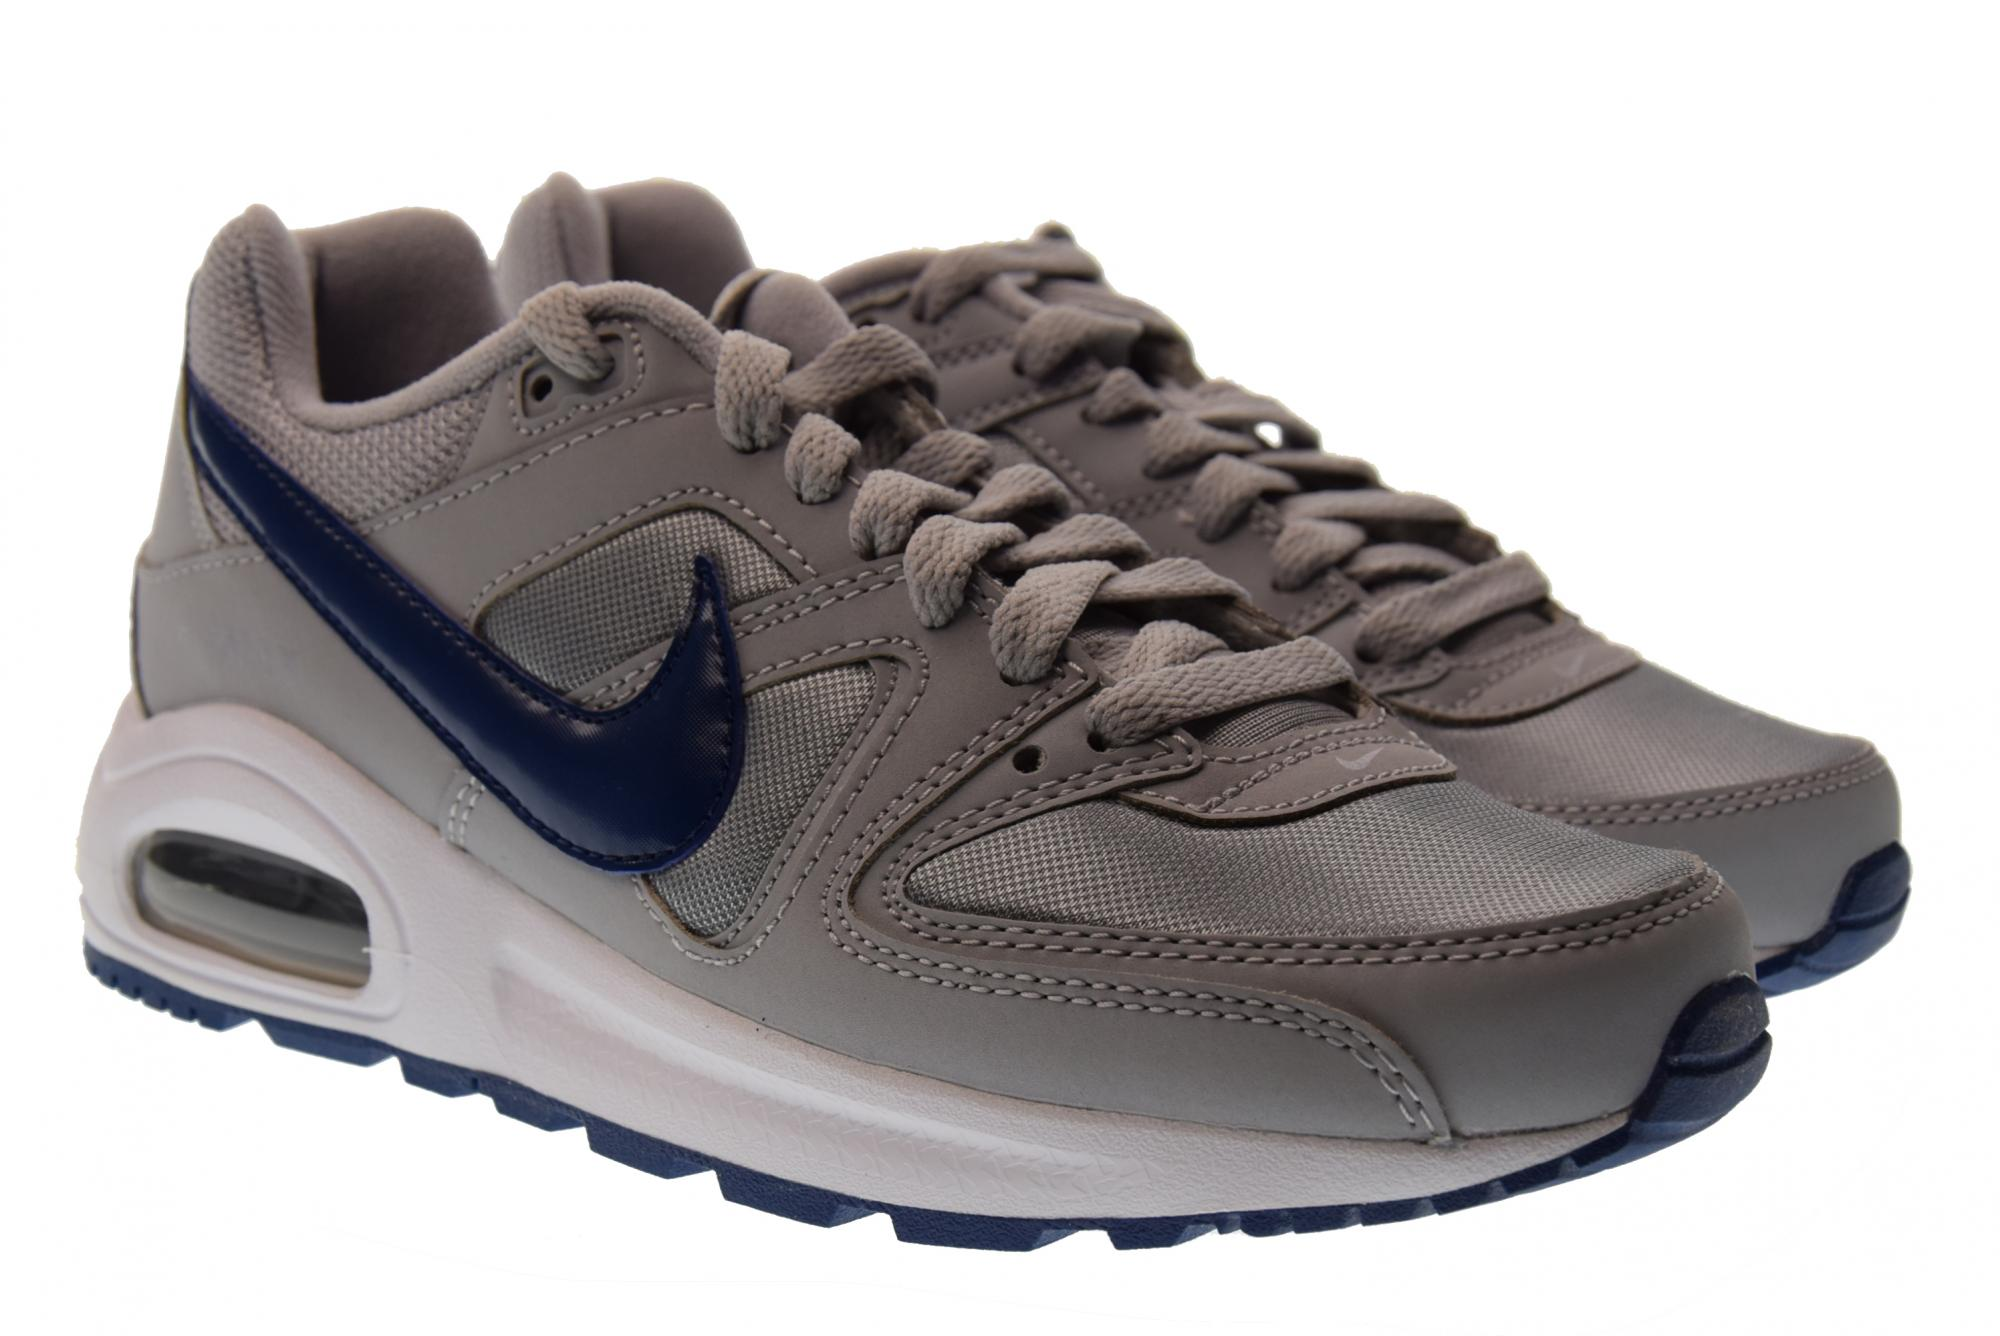 hot sale online ea2d3 b5947 Nike scarpe unisex sneakers basse 844346 041 AIR MAX COMMAND FLEX GS P18